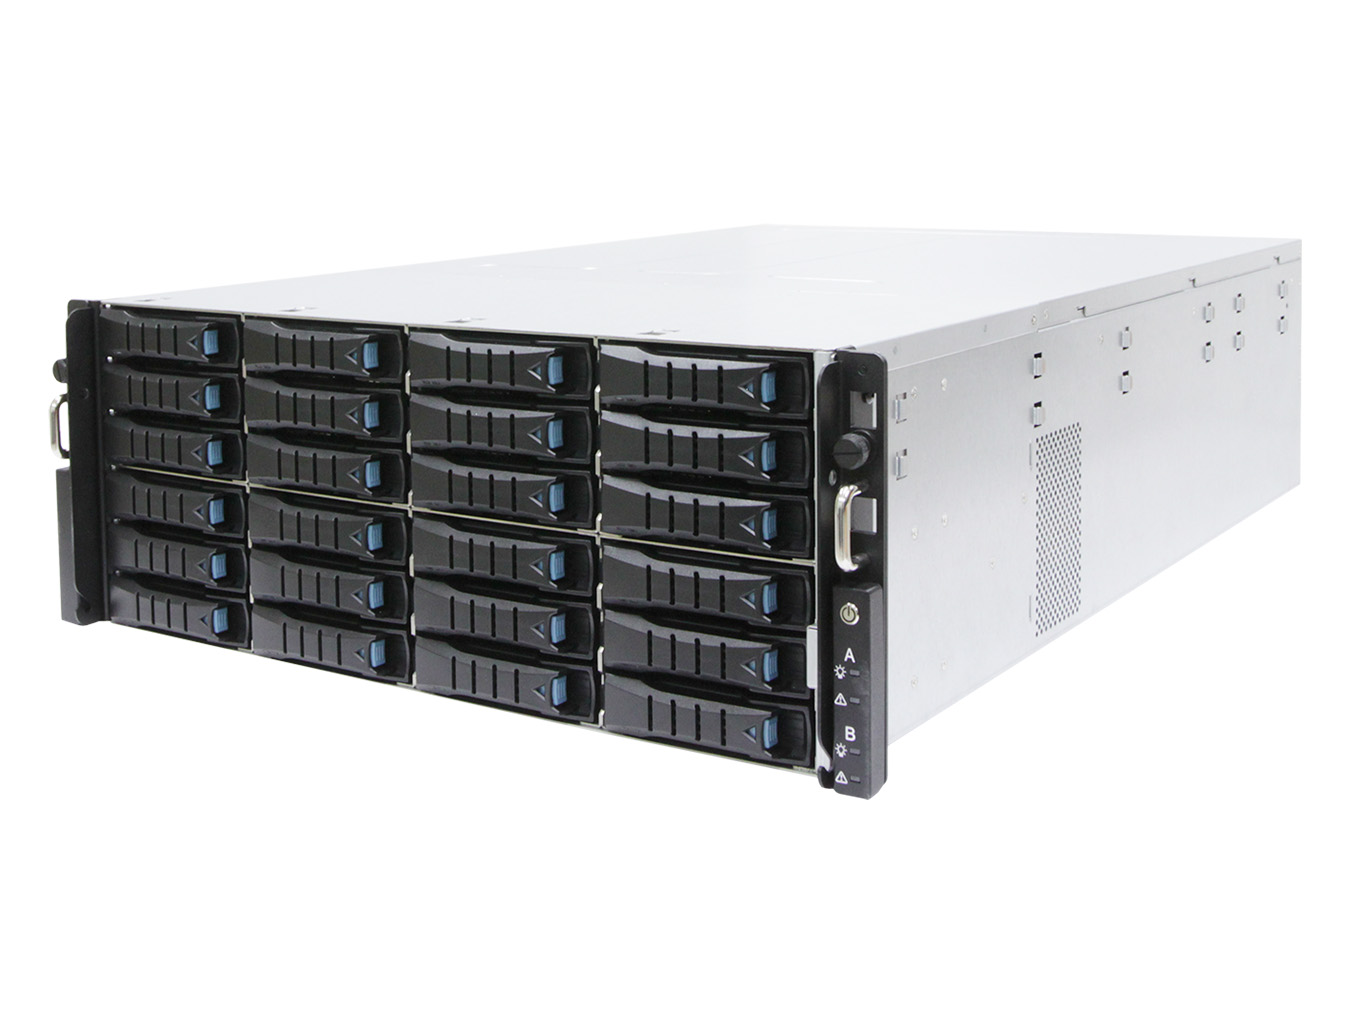 AIC HA401-LB XP1-A401LB01 4U 24-Bay Storage Server